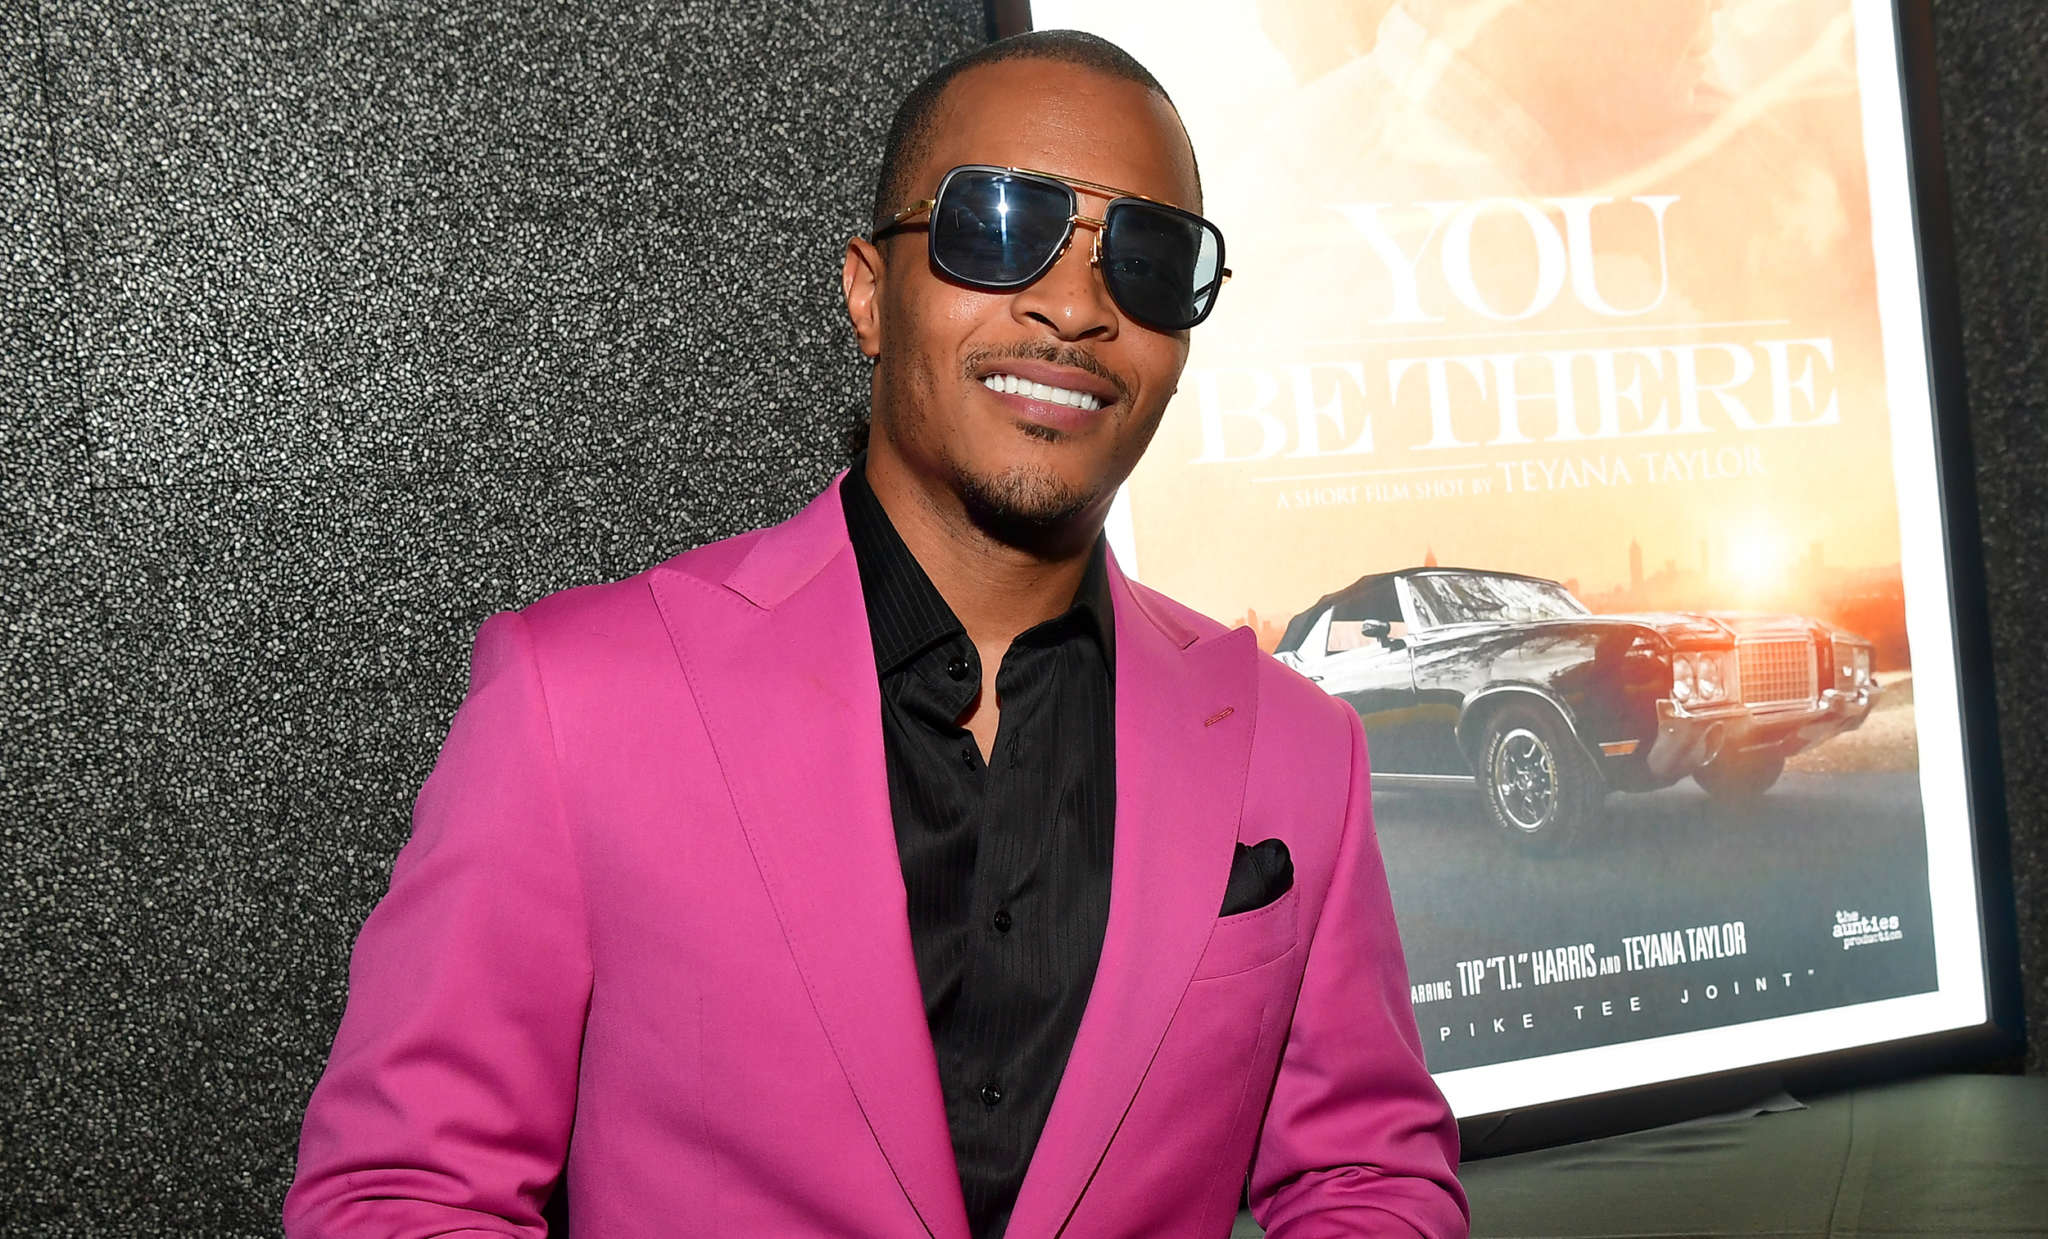 T.I.'s Fans Are Bashing Him Following This Post